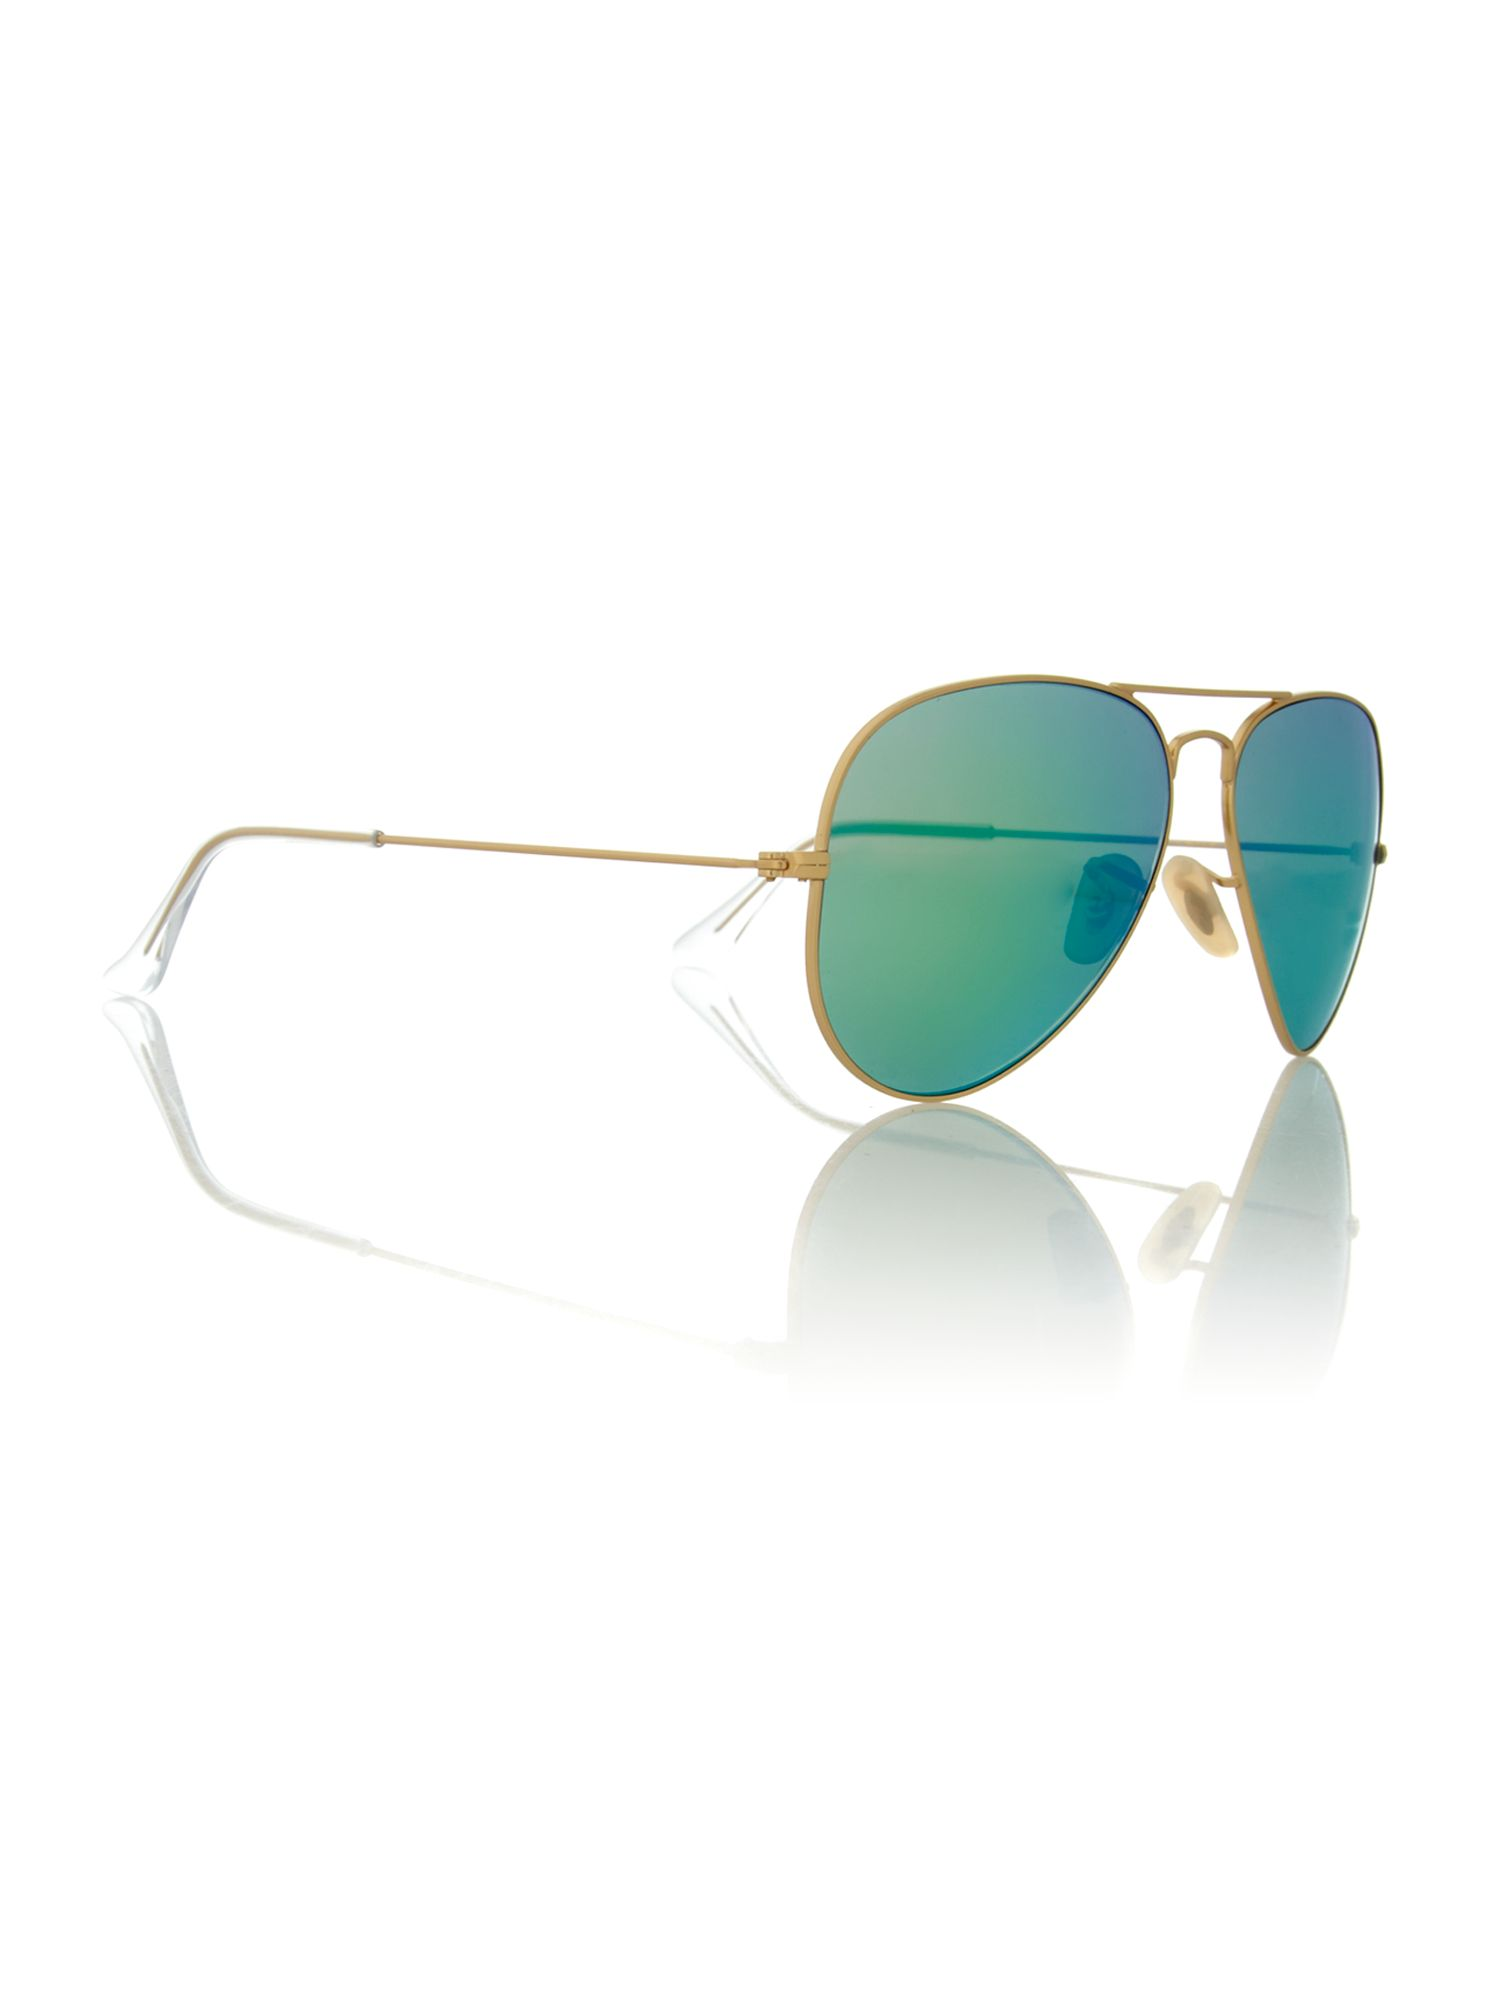 Unisex RB3025 iconic aviator sunglasses